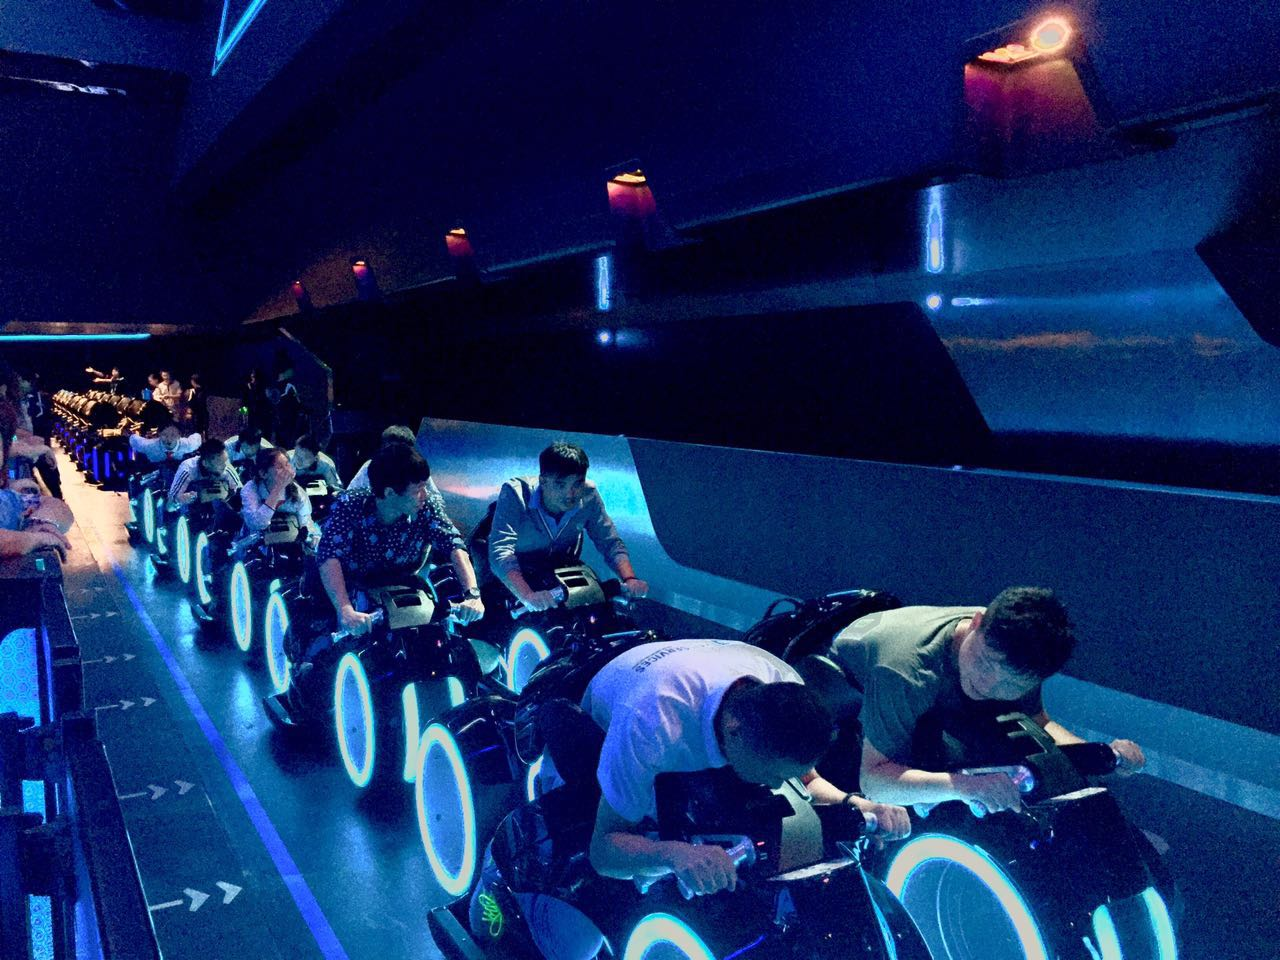 Shanghai Disneyland Tomorrowland TRON Coaster